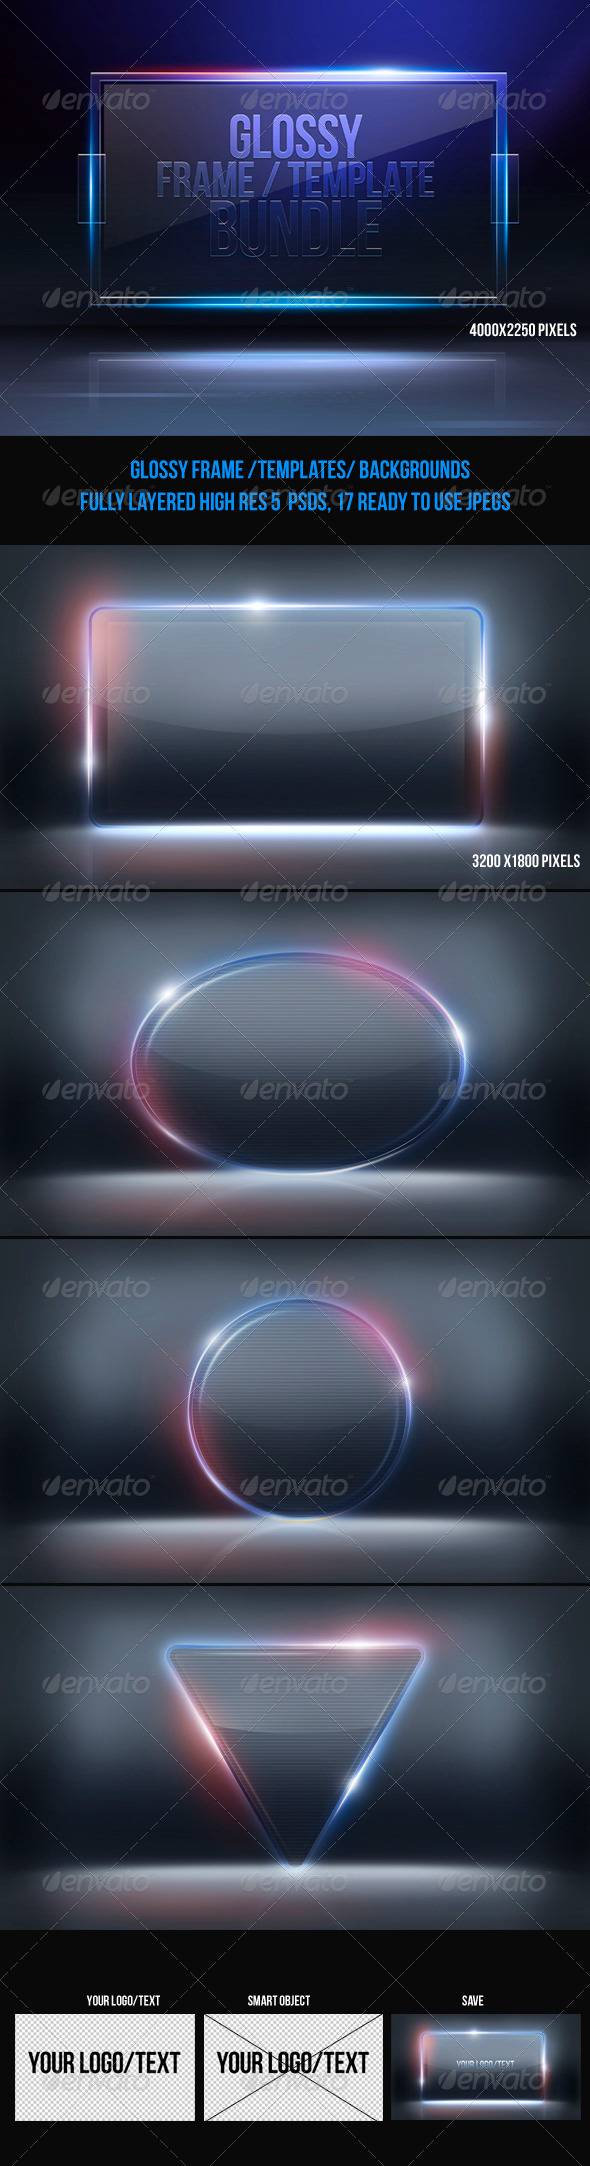 GraphicRiver Glossy Frame Template Bundle 6685423